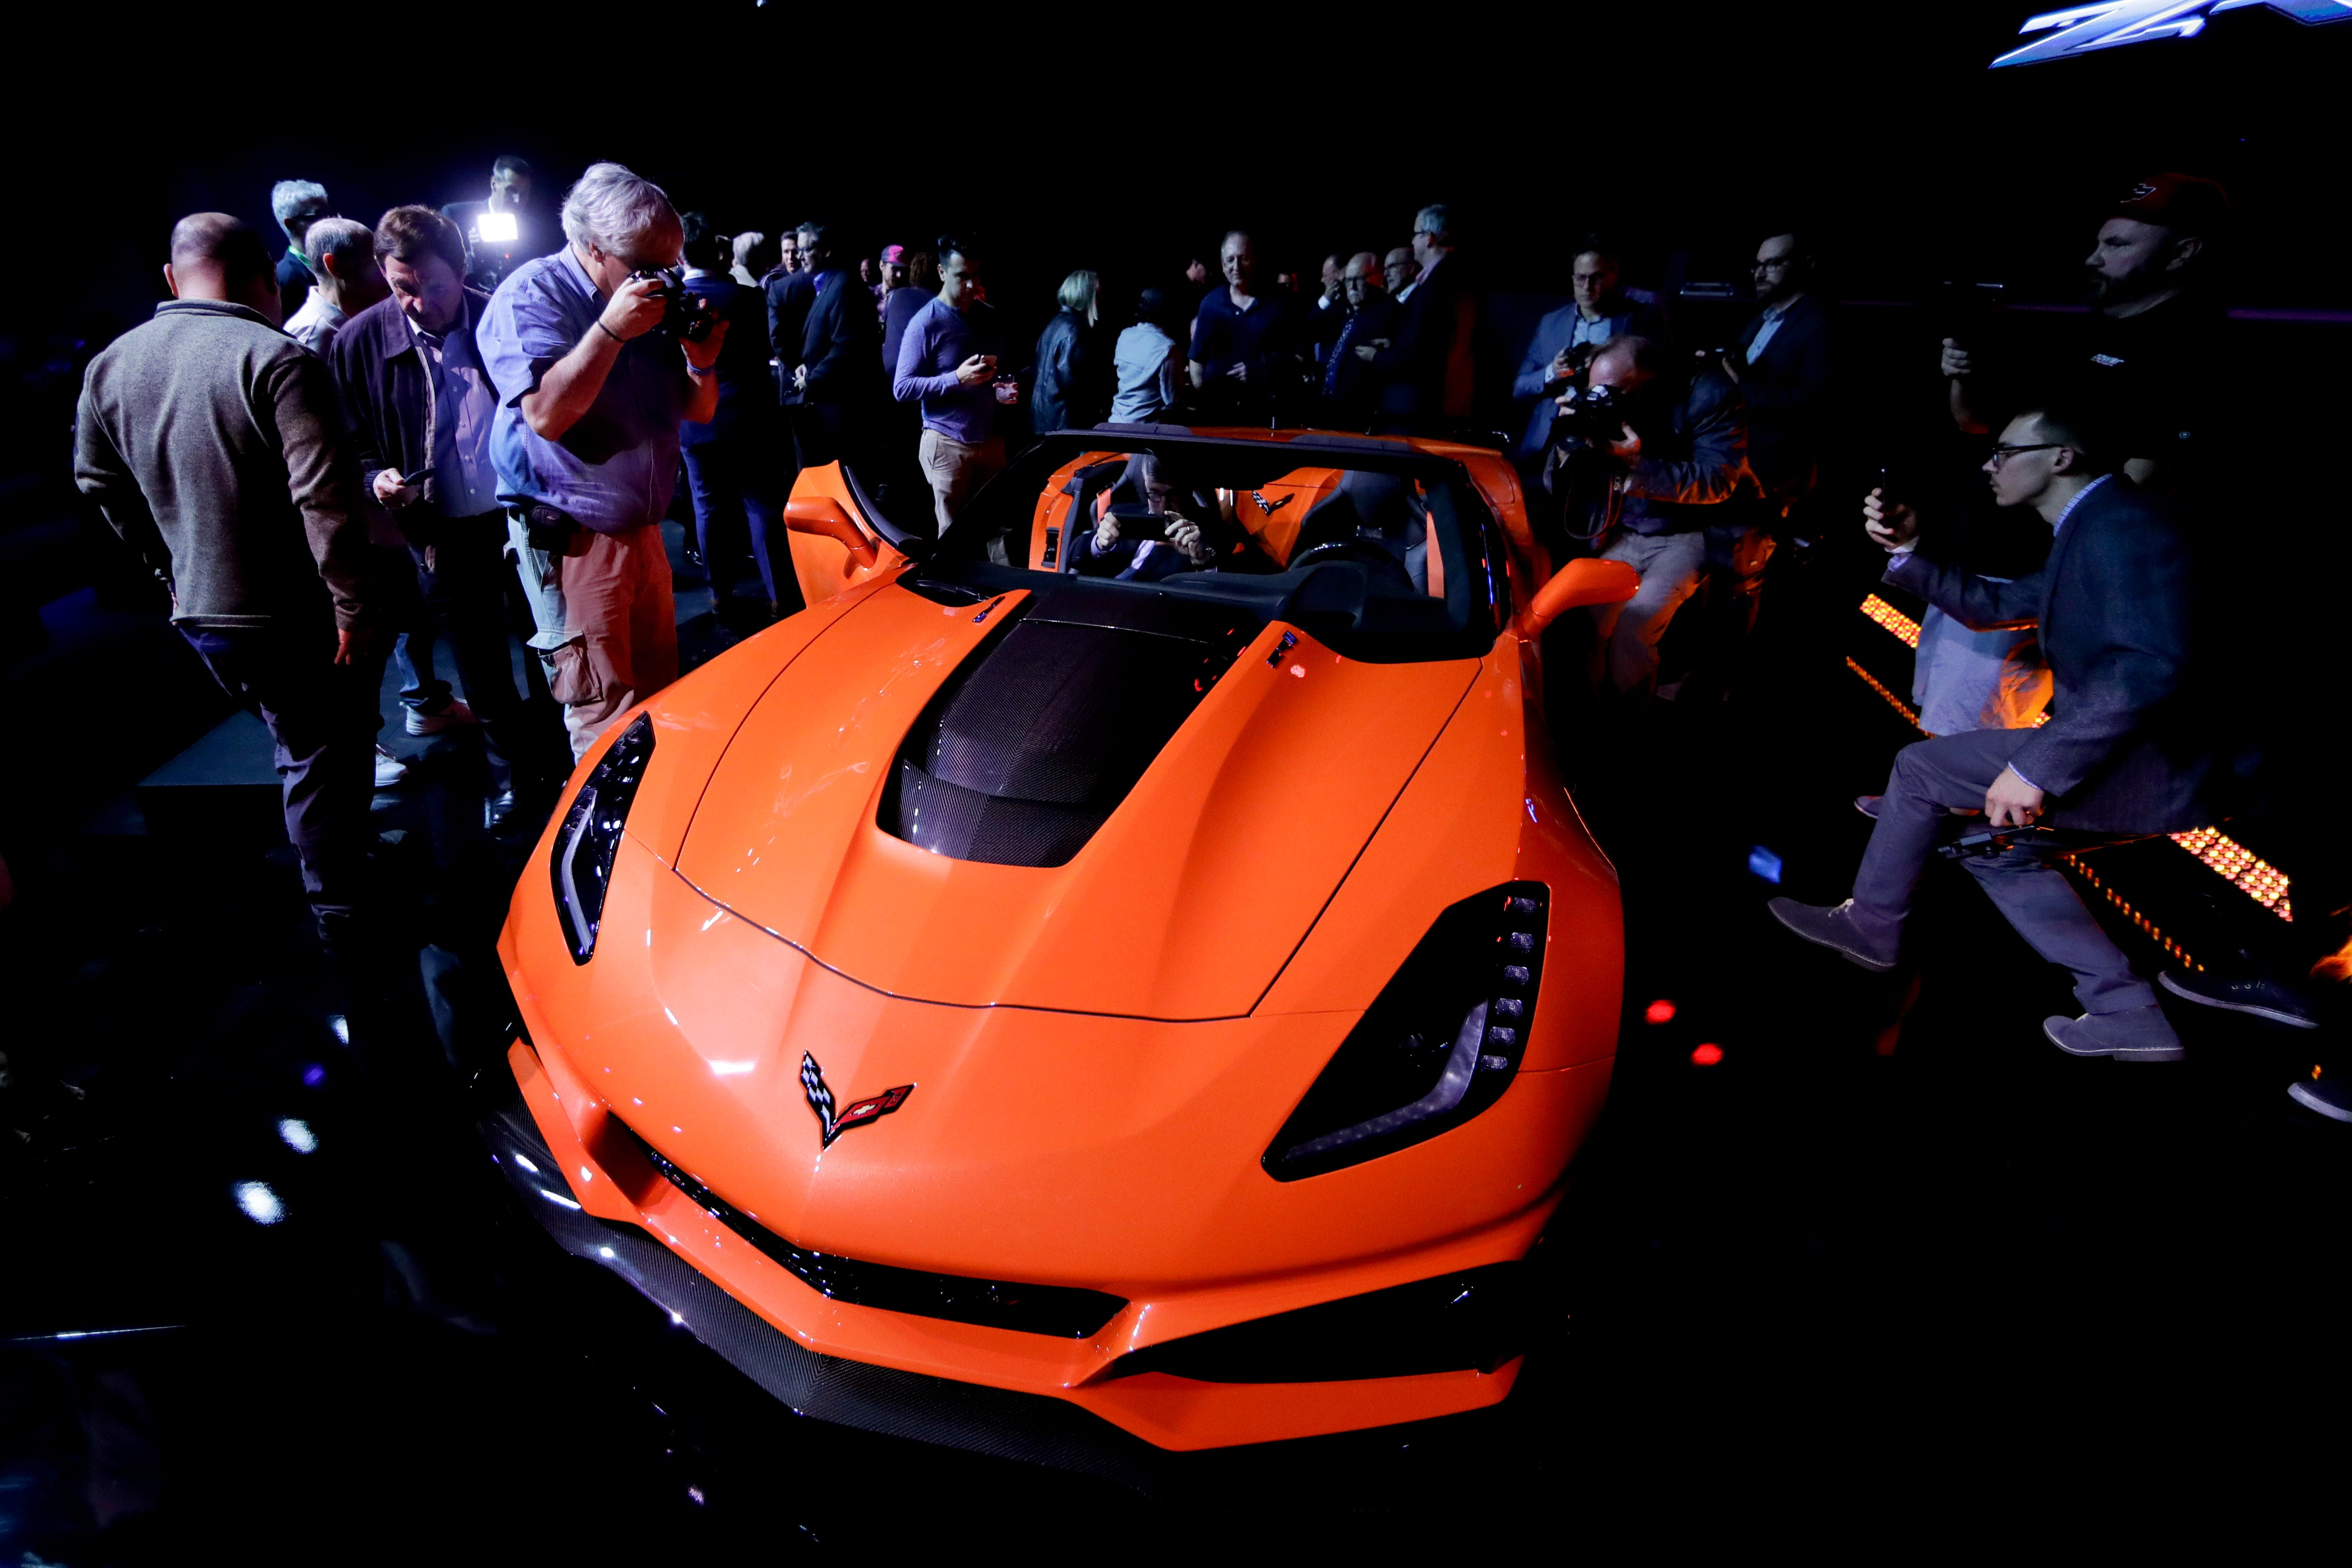 People gather around the 2019 Chevrolet Corvette ZR1